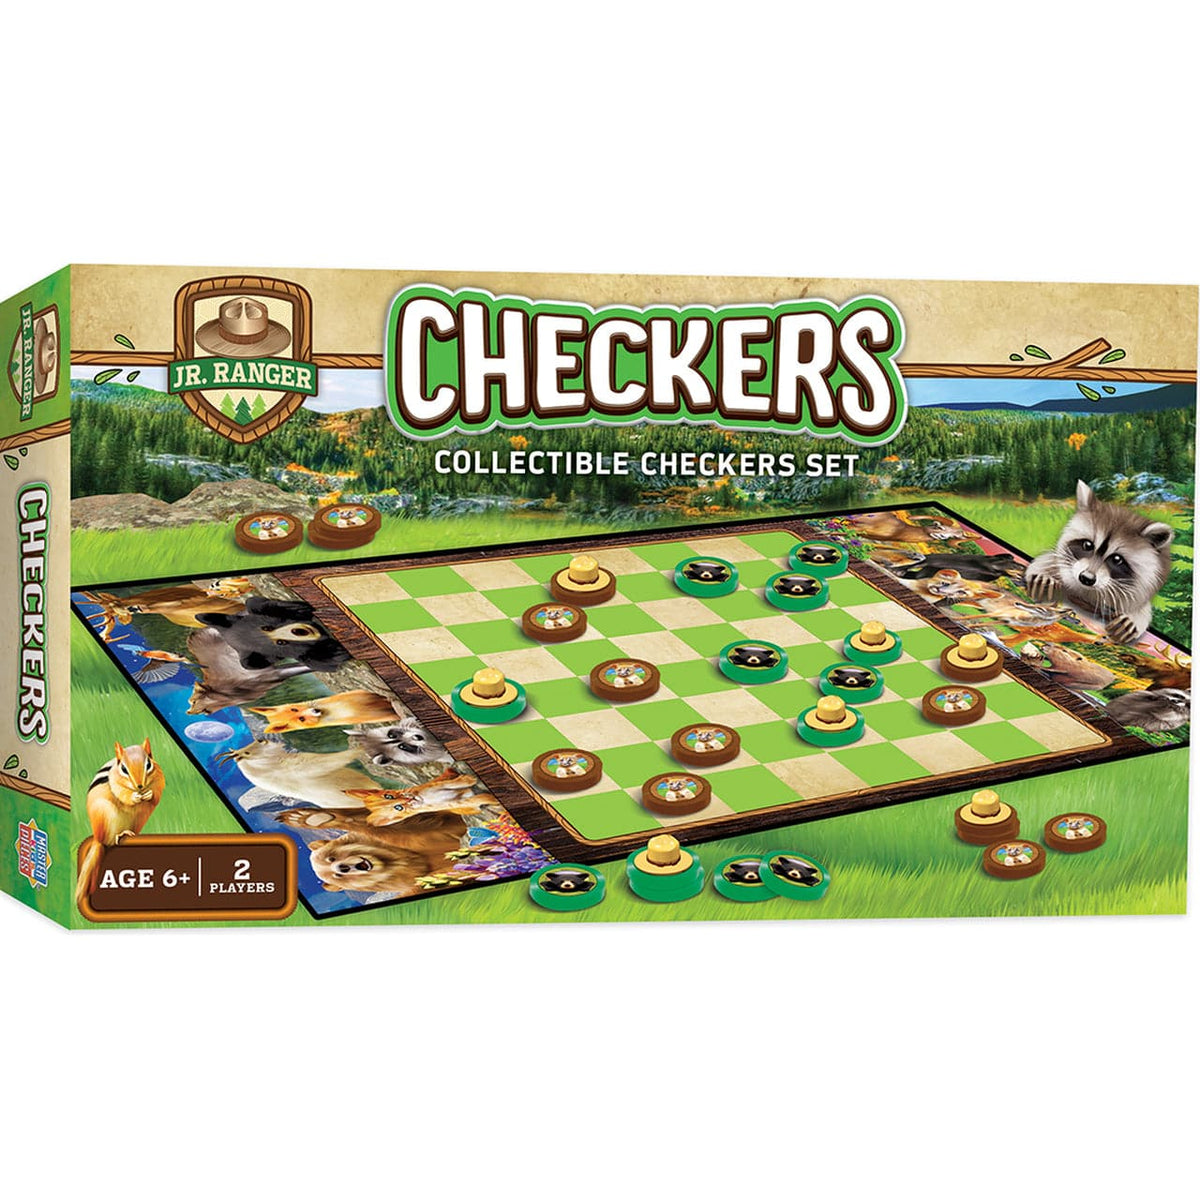 Jr. Ranger Checkers Board Game - Legacy Toys